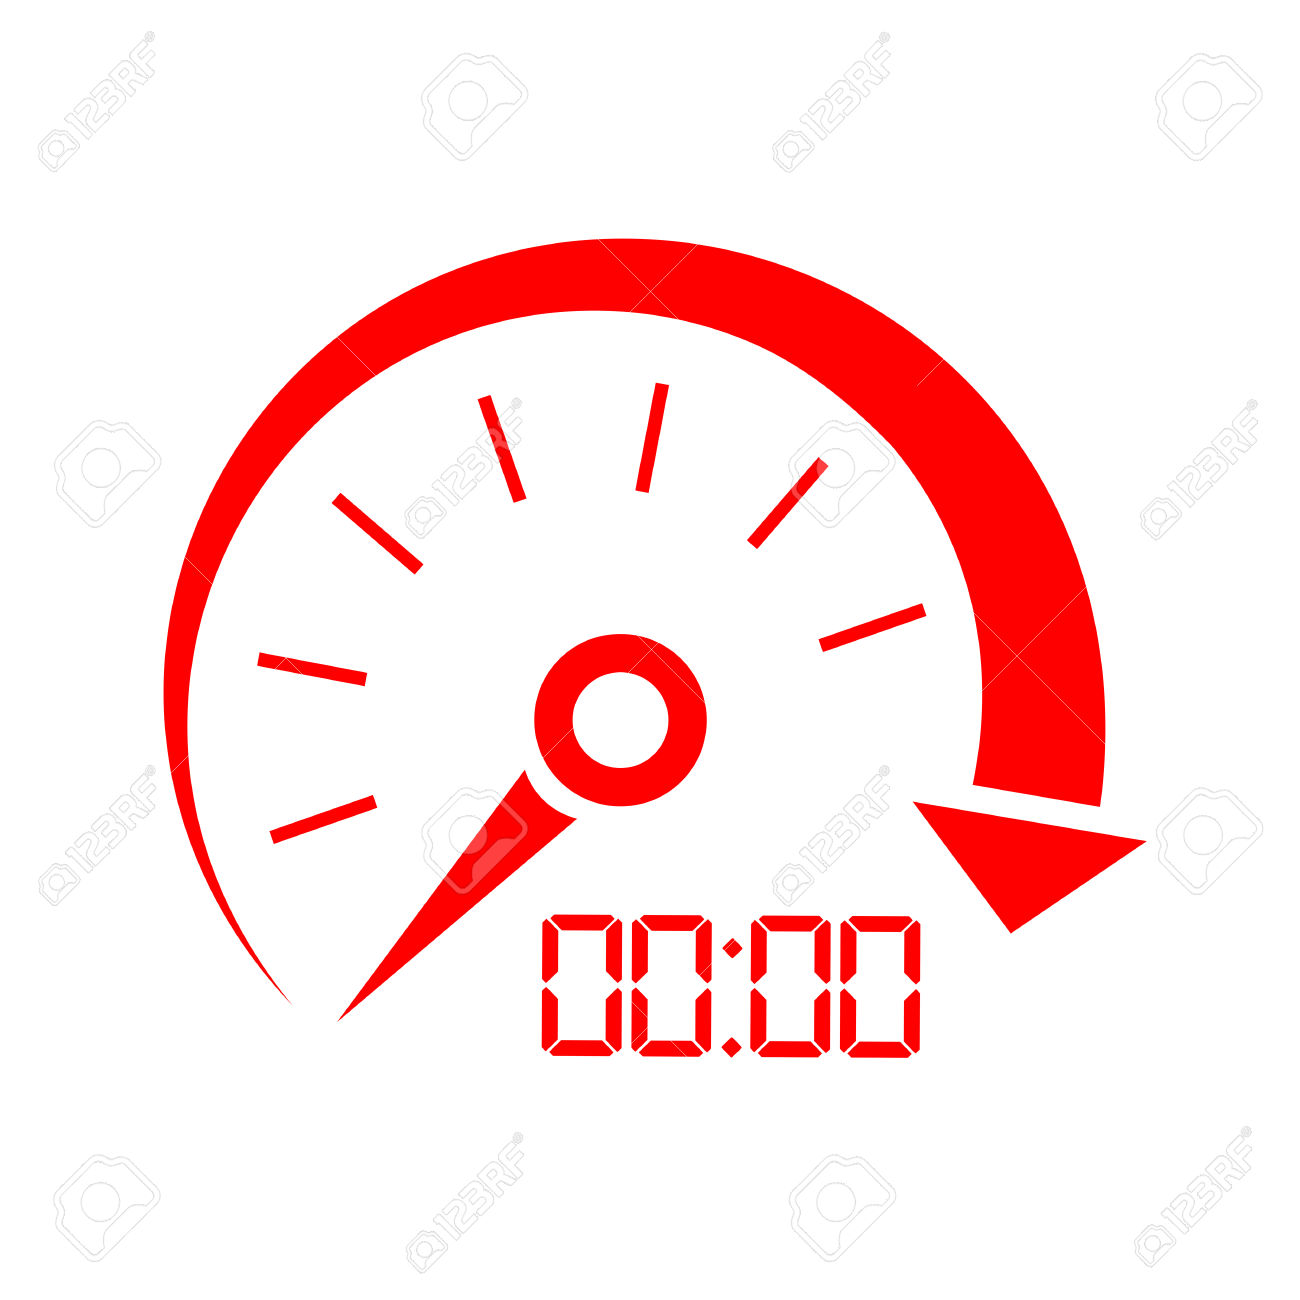 Speed Indicator Icon Royalty Free Cliparts, Vectors, And Stock.